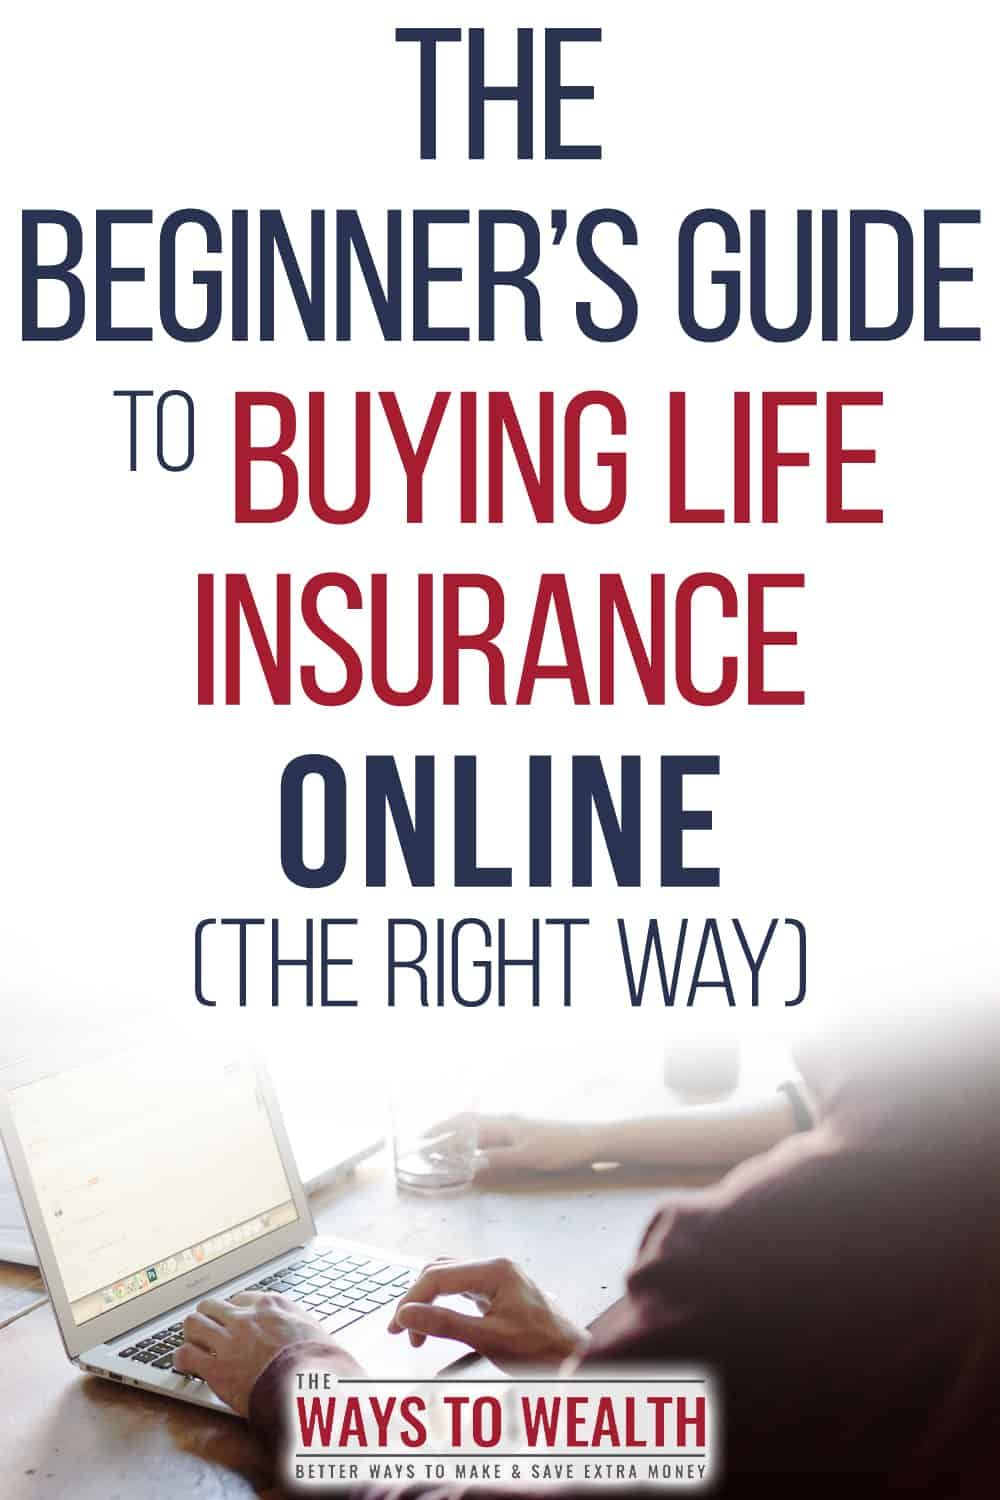 How To Buy Life Insurance Online (Quickly) | Buy life ...